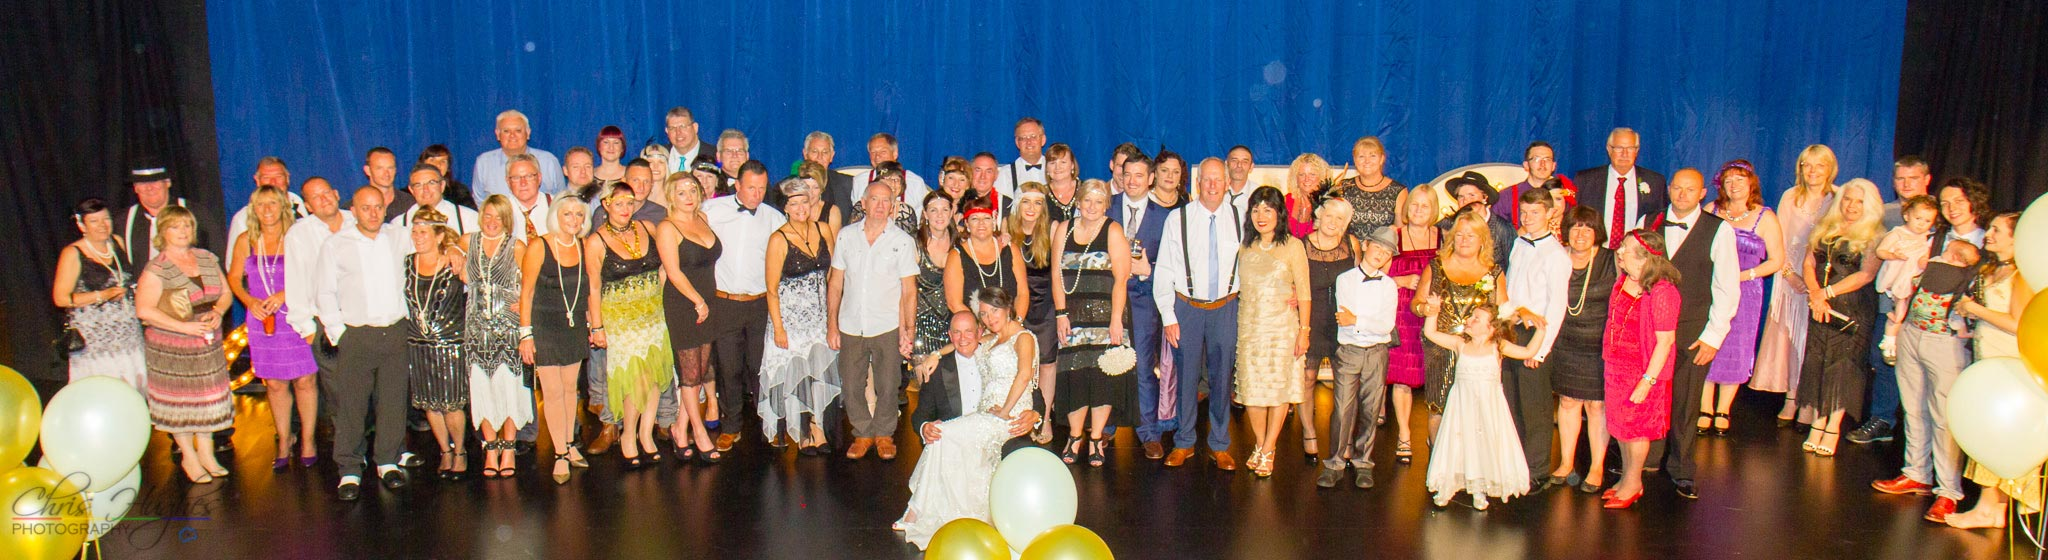 Group photo of the guests at The Majestic, Darlington